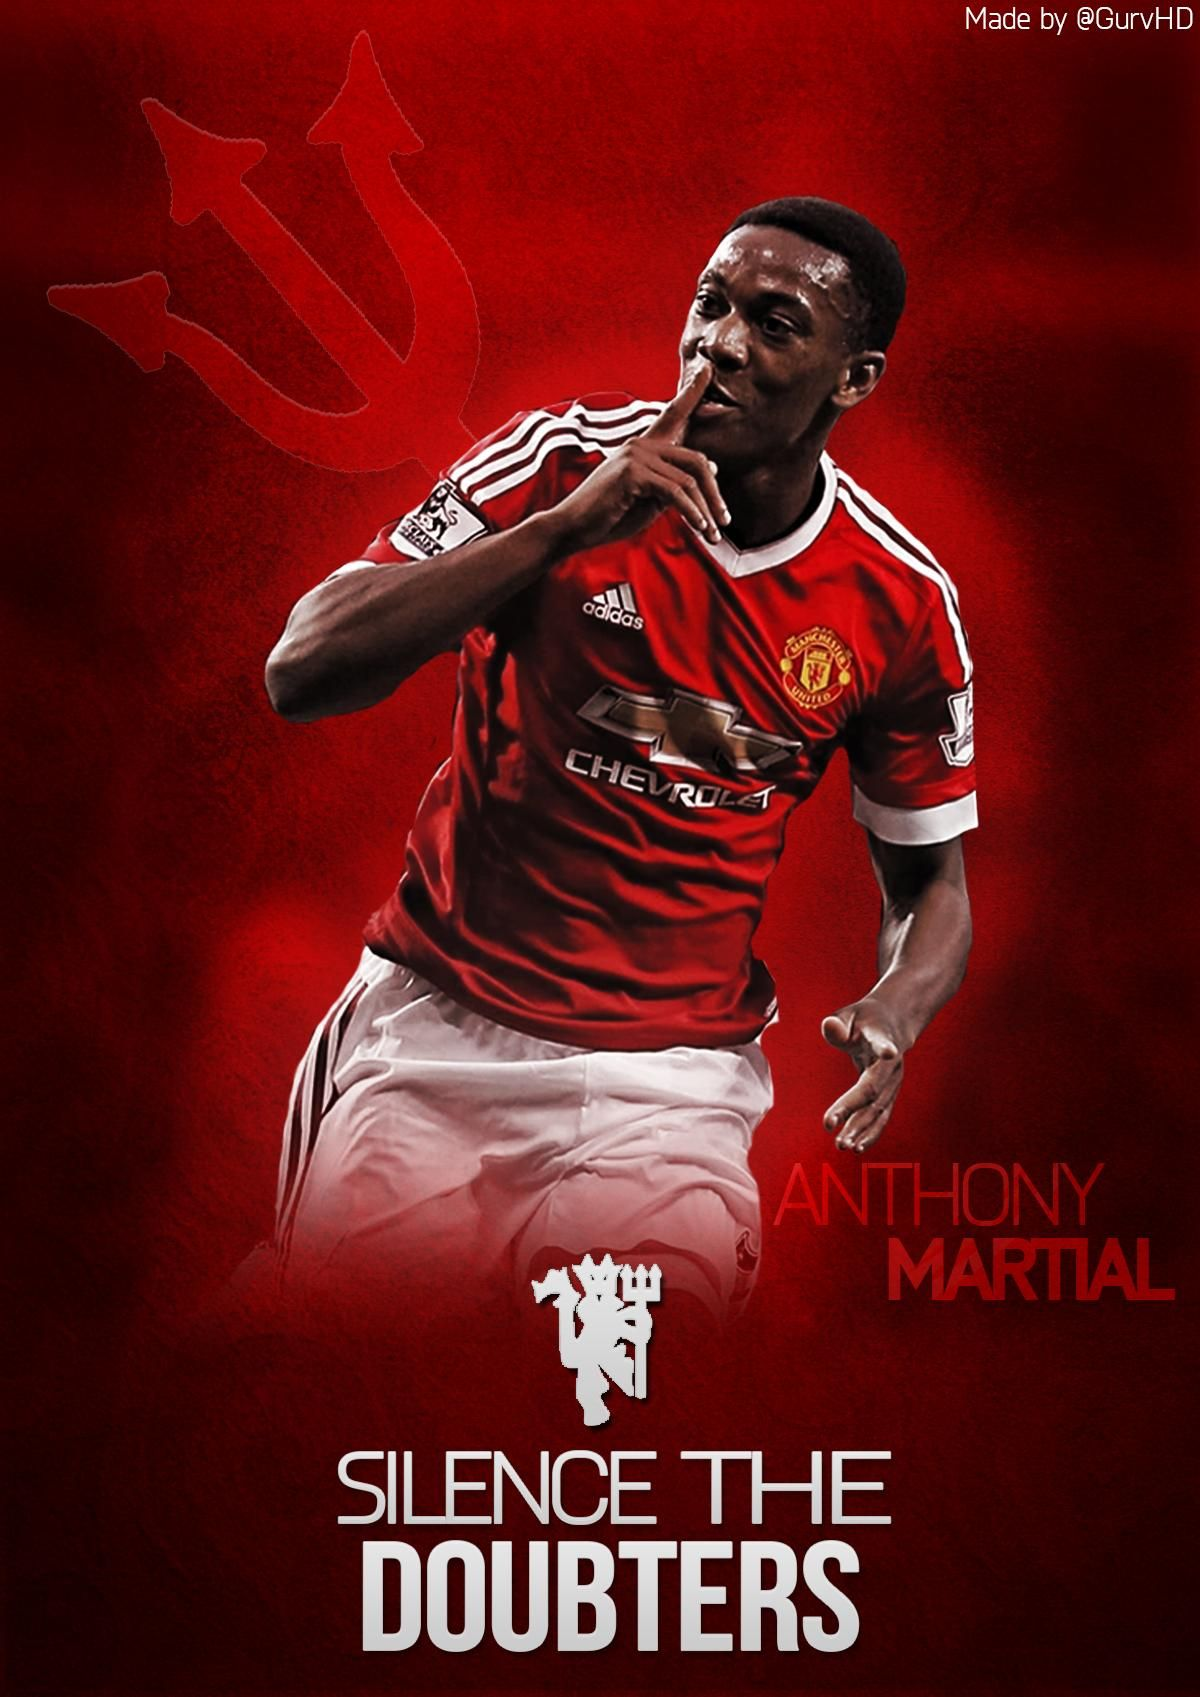 anthony martial wallpaper 2020 live wallpaper hd anthony martial manchester united team manchester united logo anthony martial wallpaper 2020 live